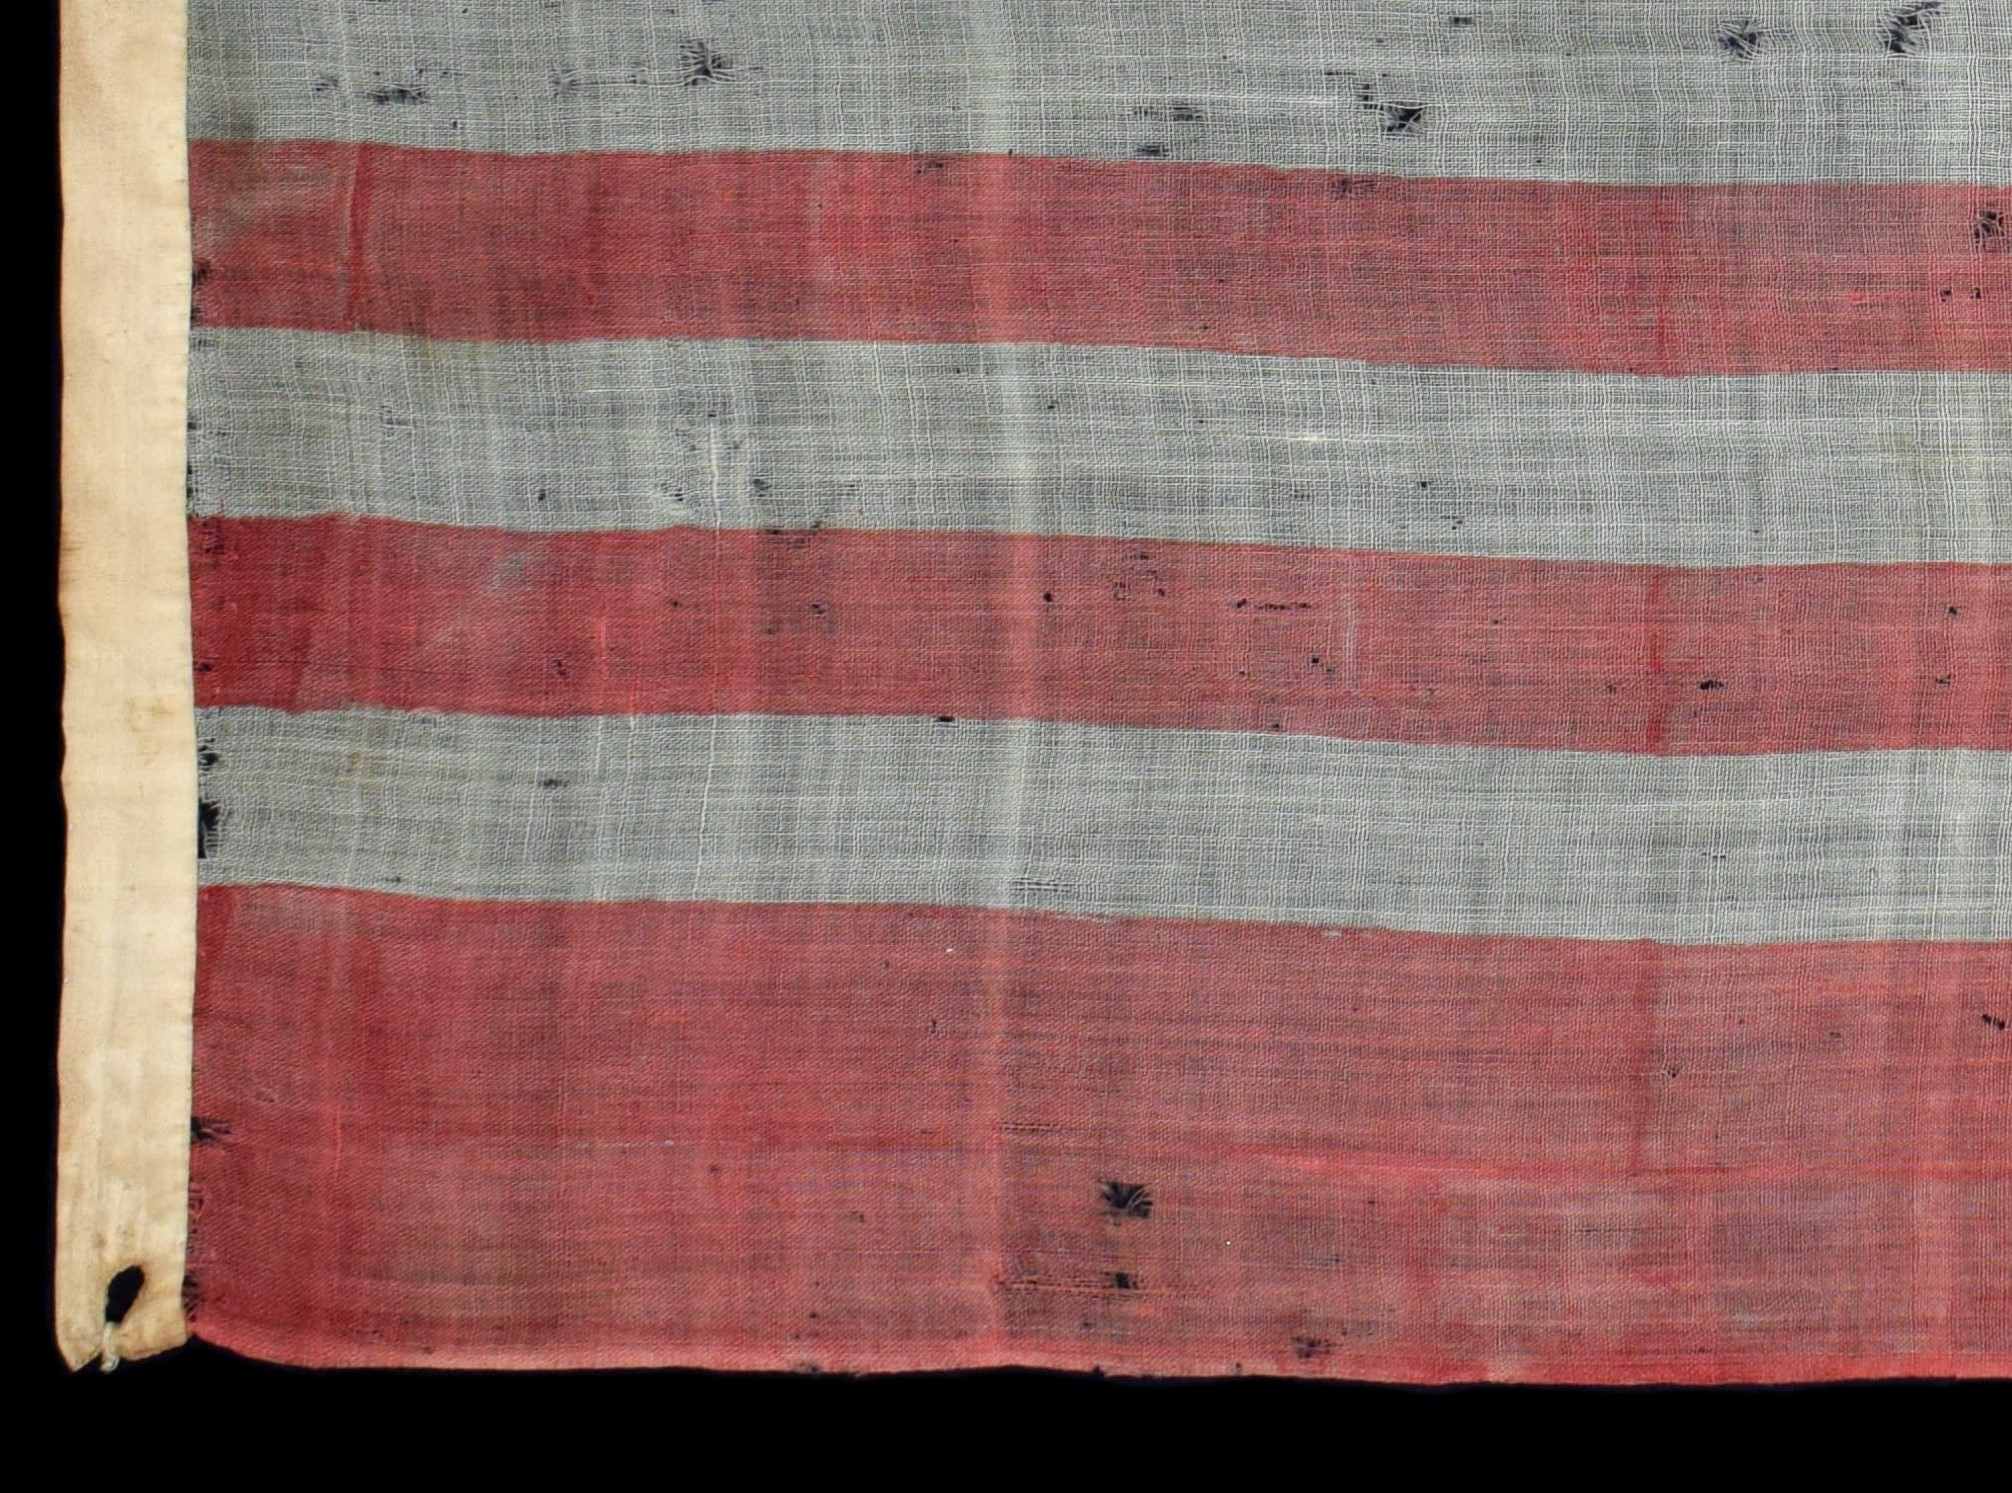 Antique Flag with Whip-stitched Grommets